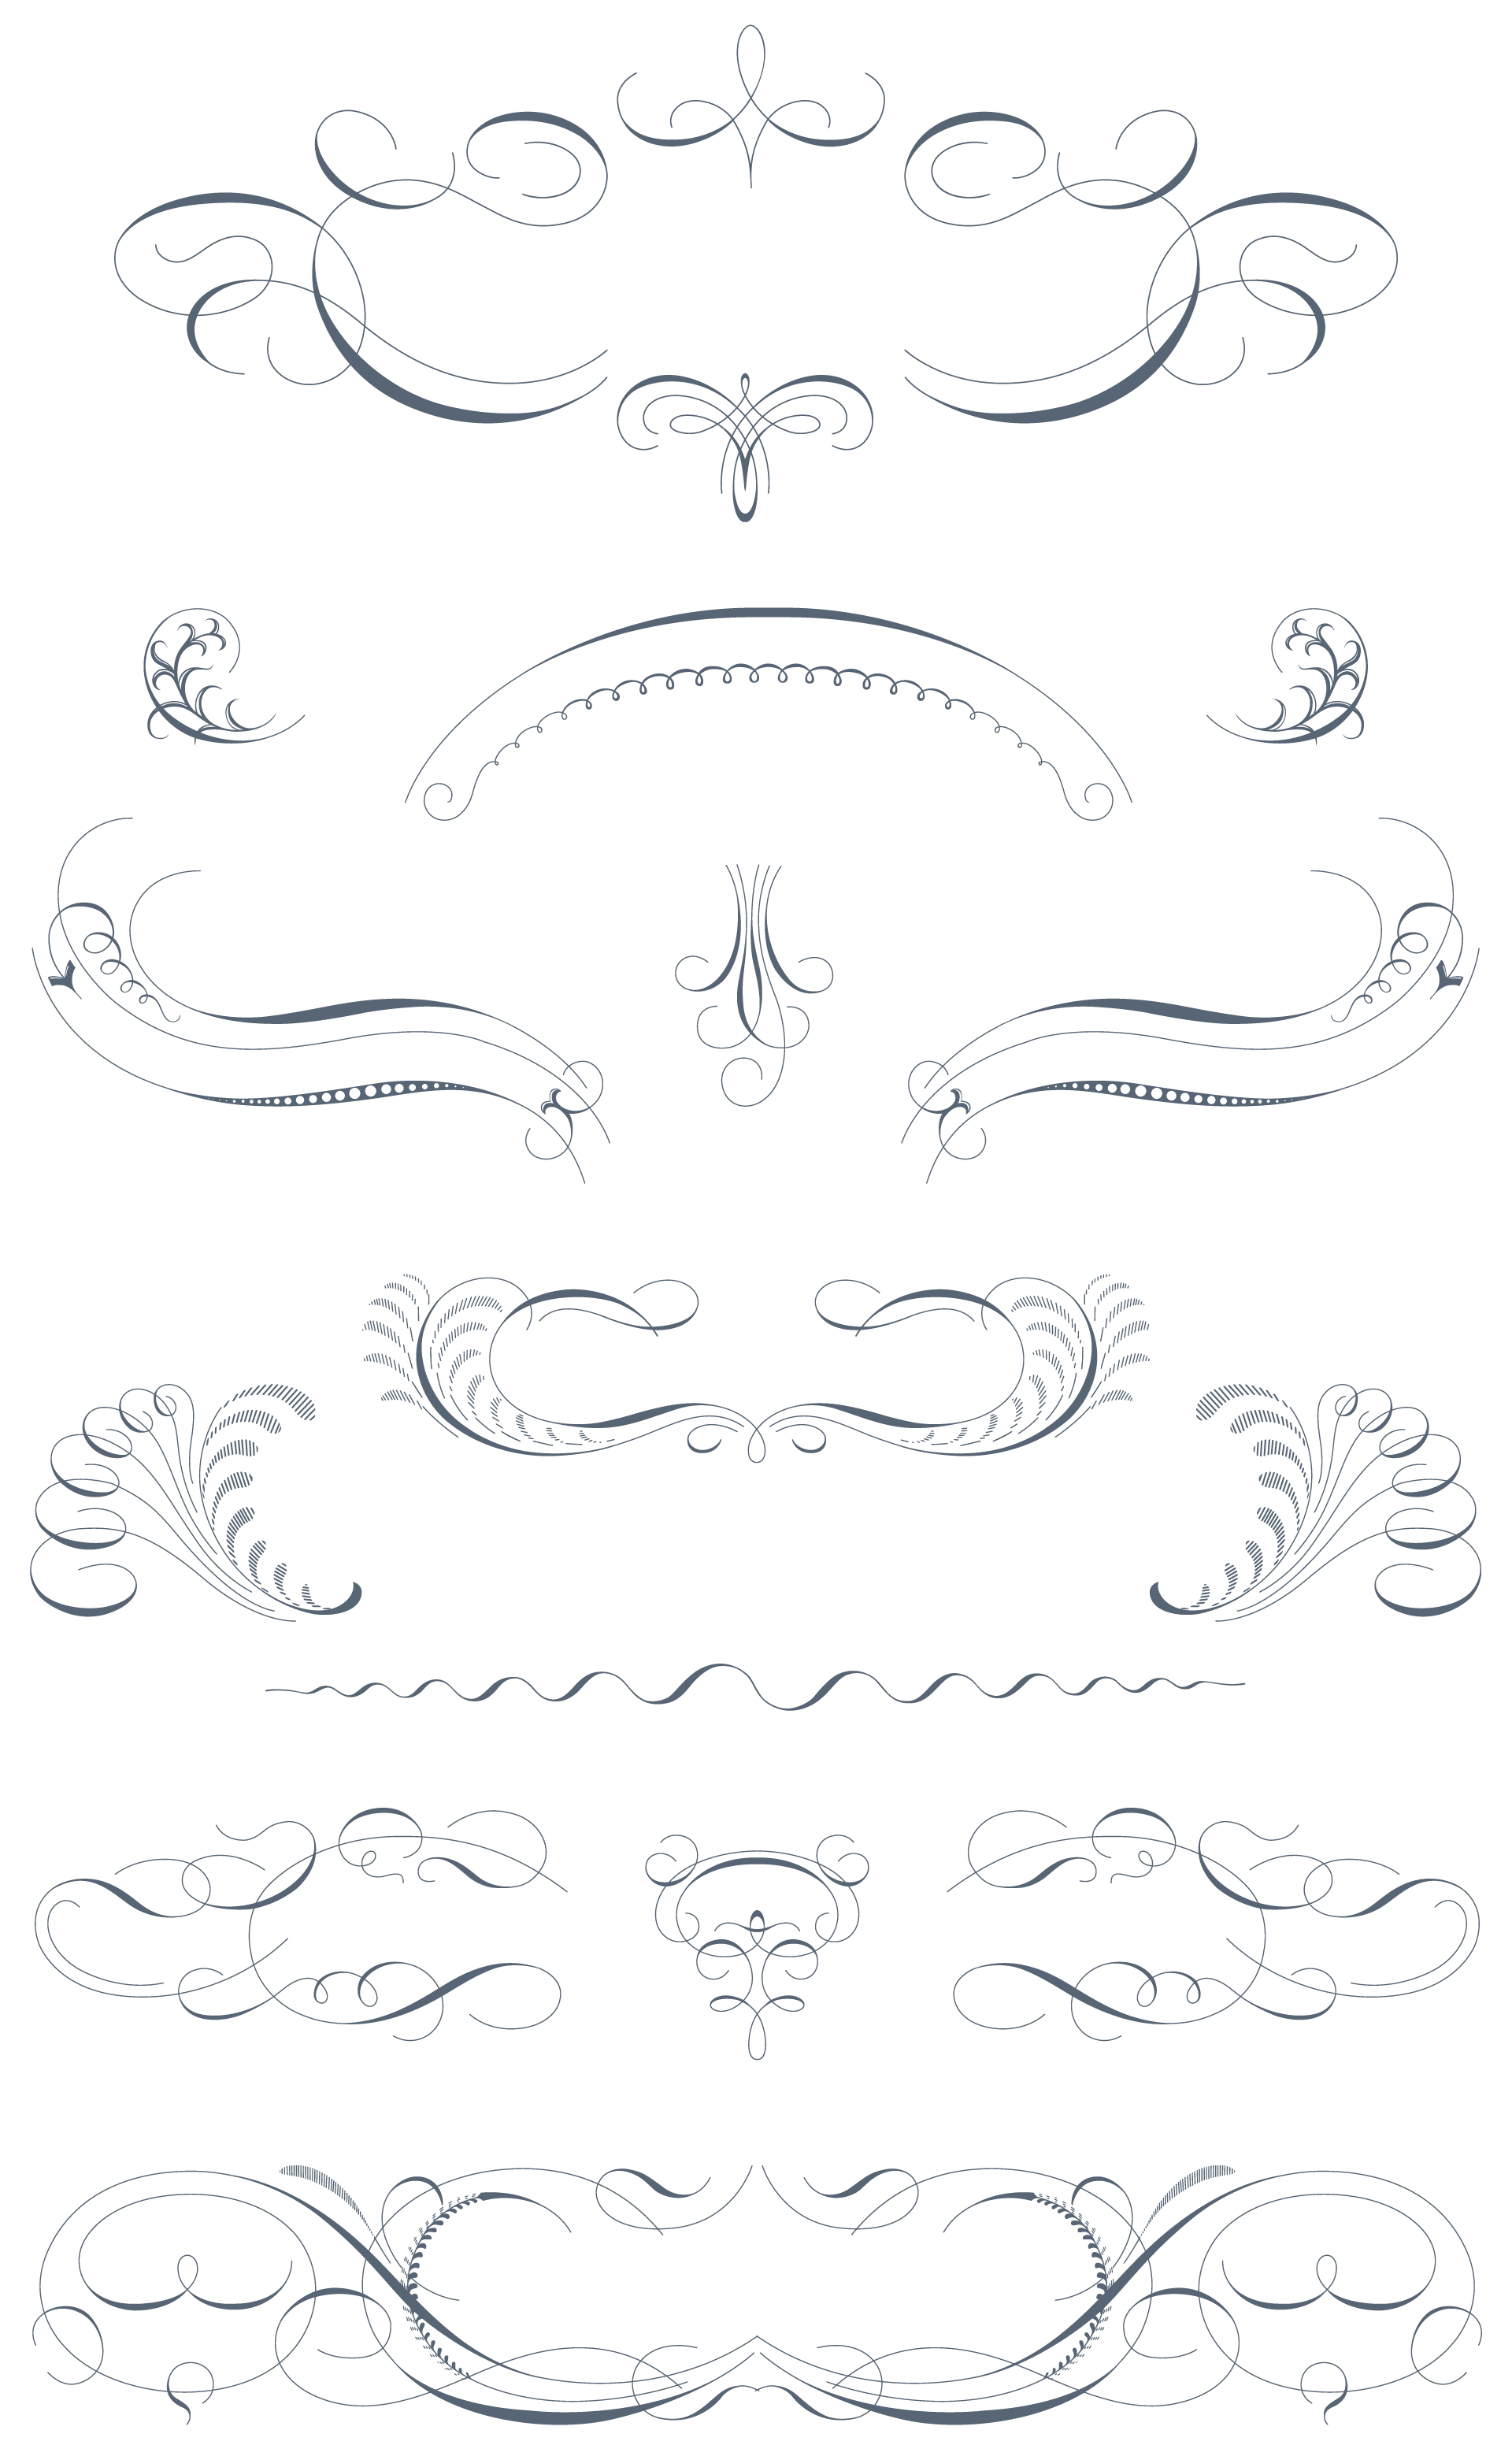 Luxurious Flourishes Vector Pack 543 Vector Ornaments 179